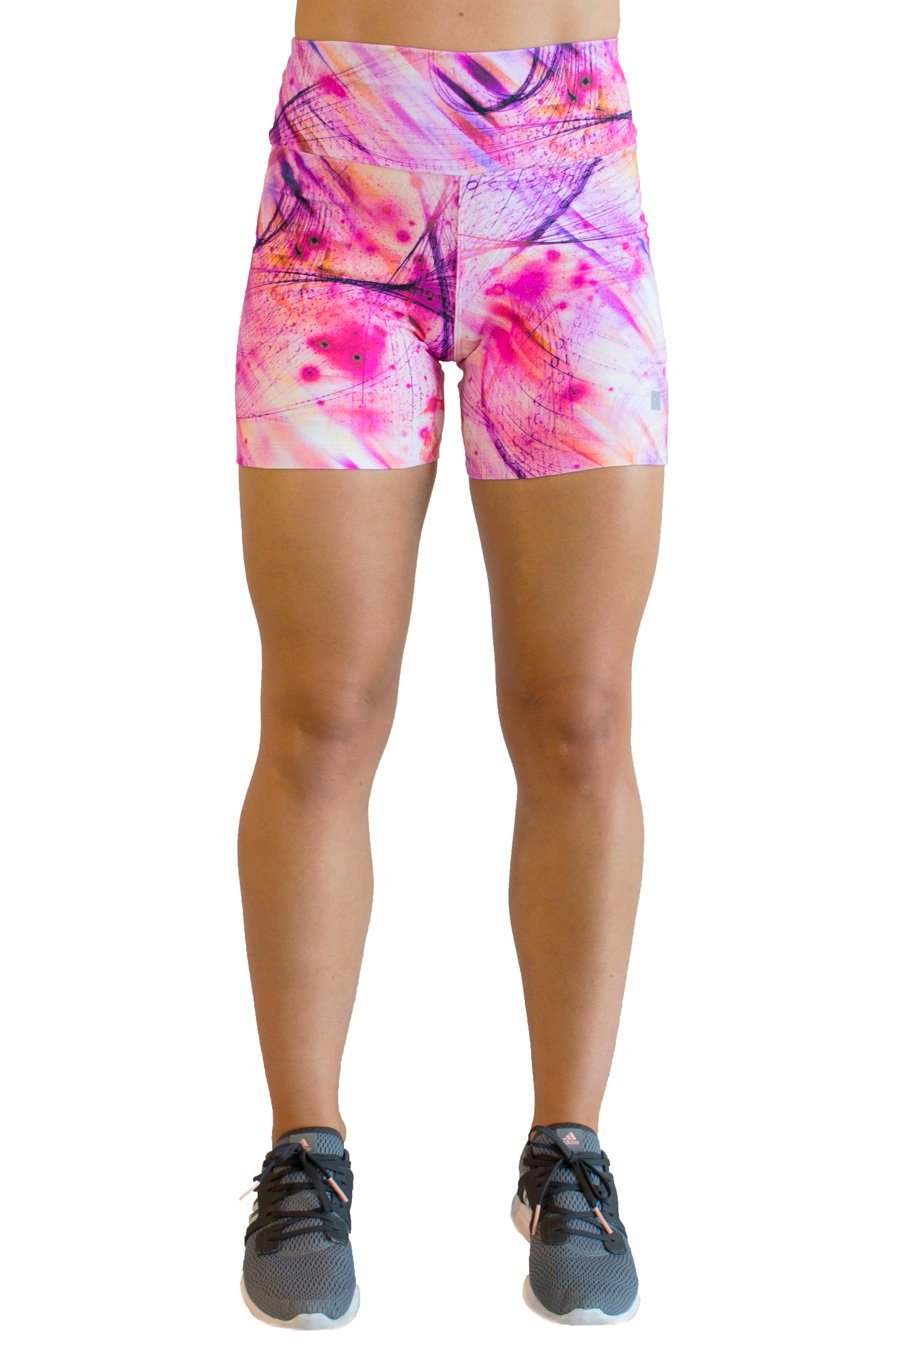 Raio de Sol Shorts - women yoga clothes beBrazil